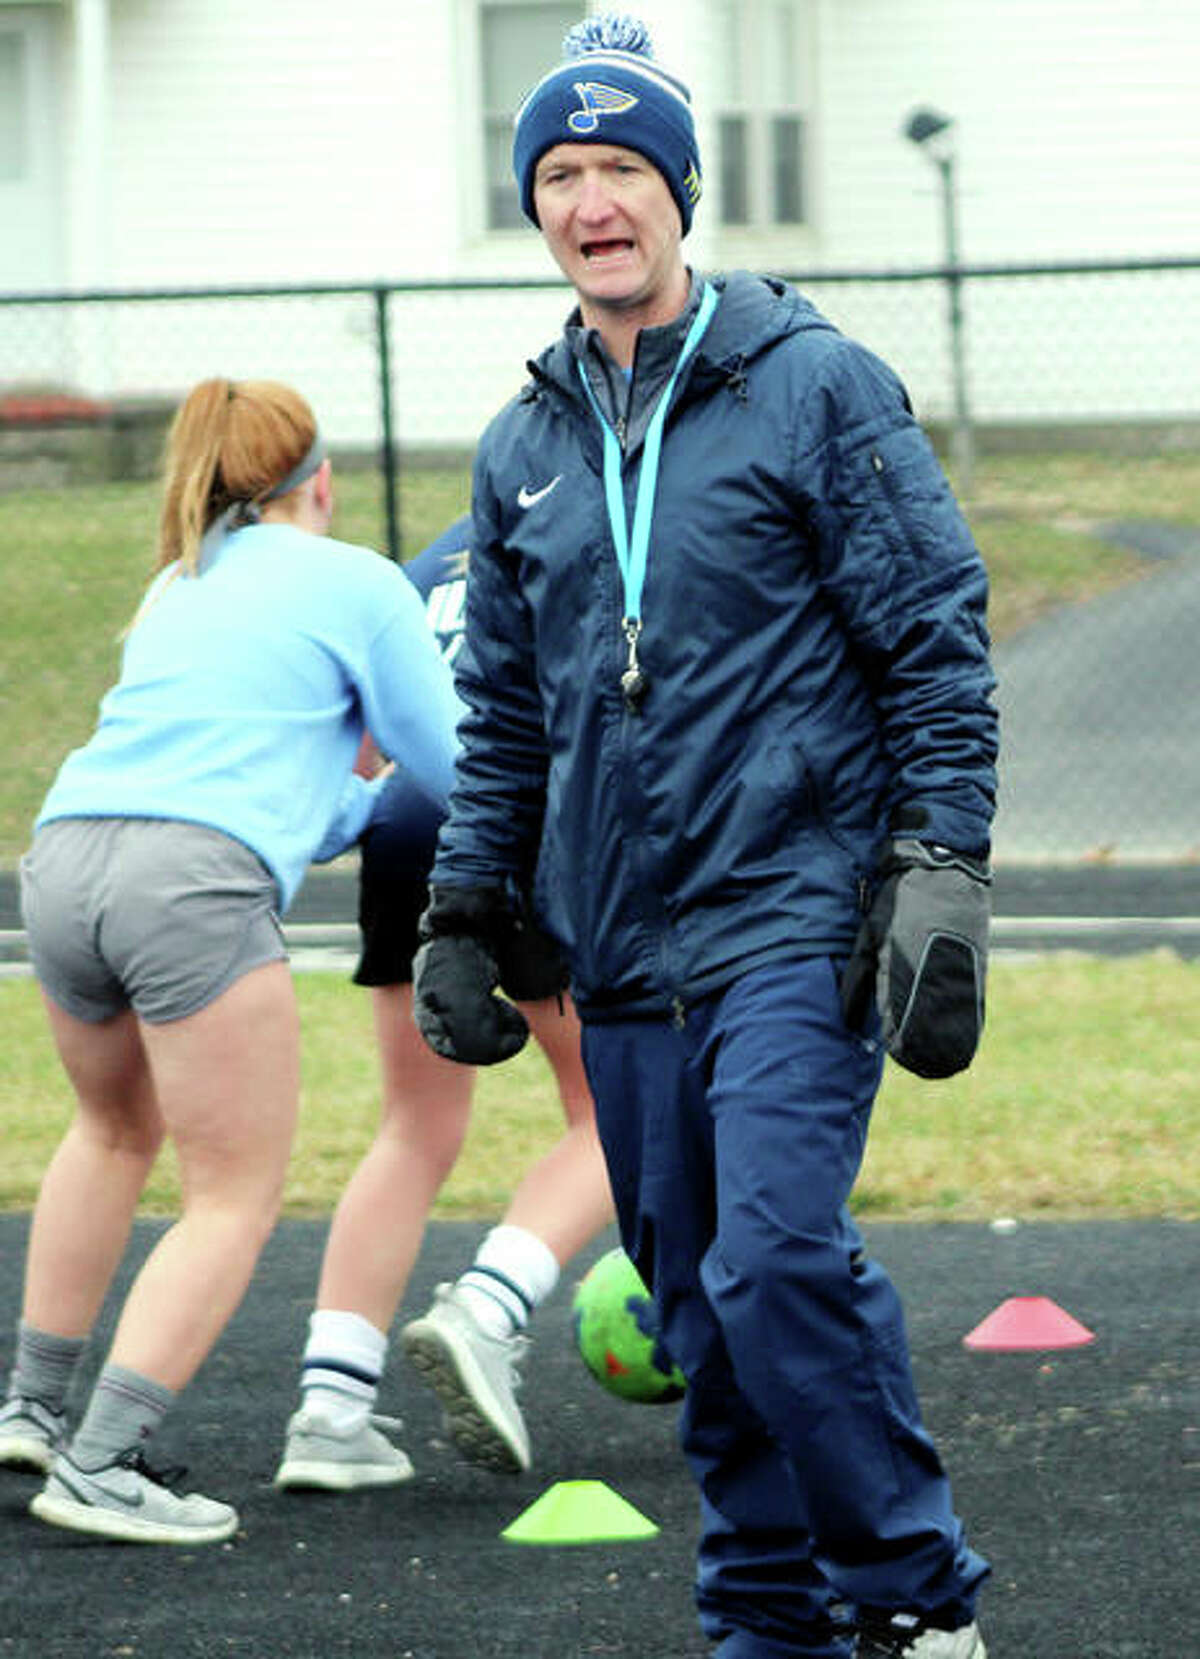 Scott Burney shouts instructions during girls soccer practice last March in Jerseyville. Burney, also the long-time boys soccer coach at Jersey, was preparing for his first season with the girls team after adding it to his duties at JCHS when the coronavirus shutdown struck. The boys soccer season has been moved to spring 2021, with the girls moving to a new summer season.